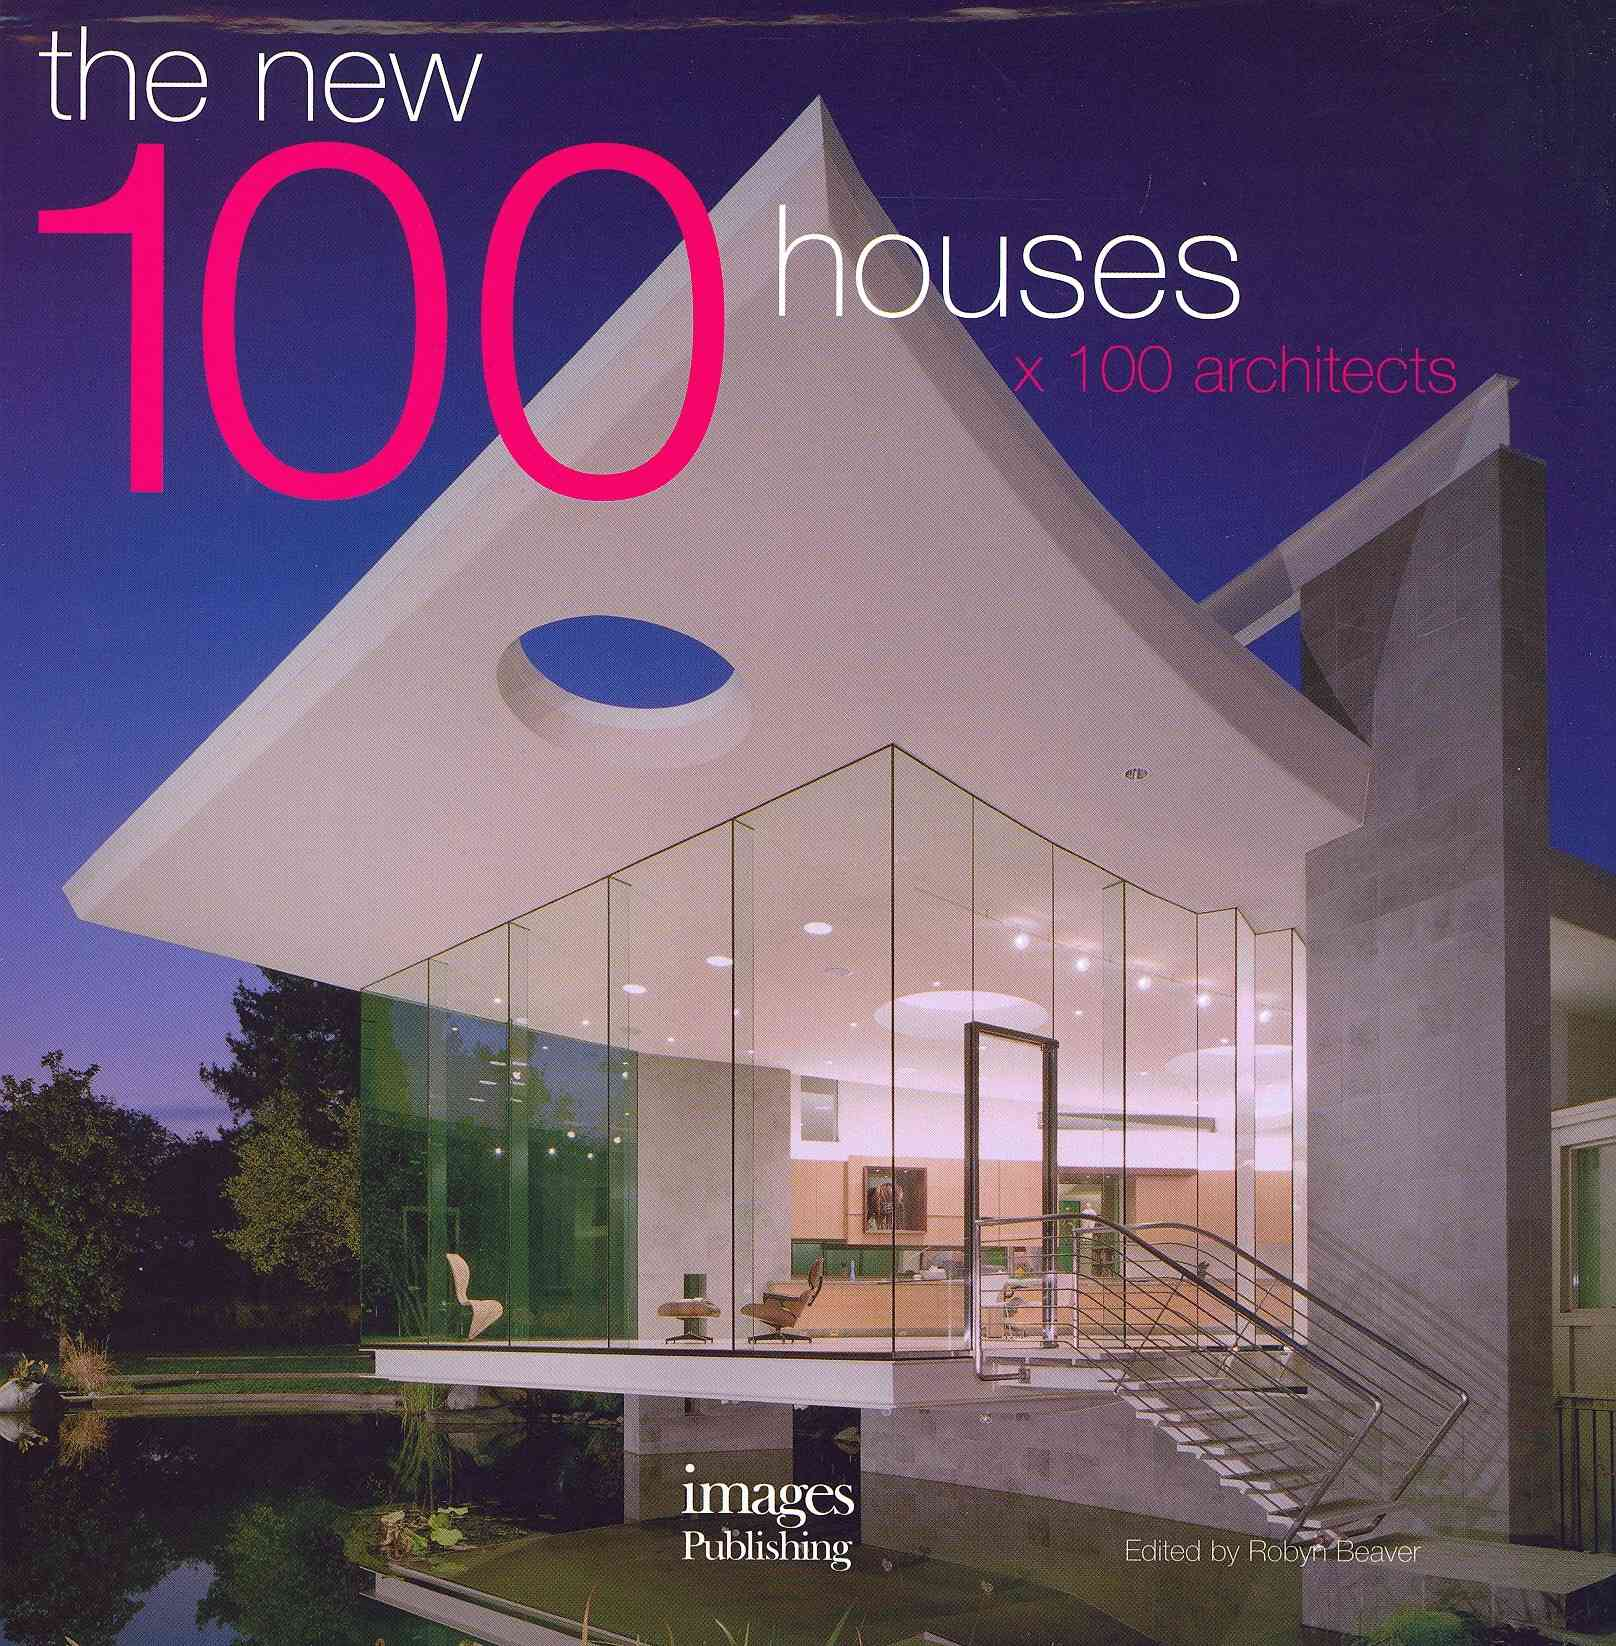 The New 100 Houses X 100 Architects (Hardcover)